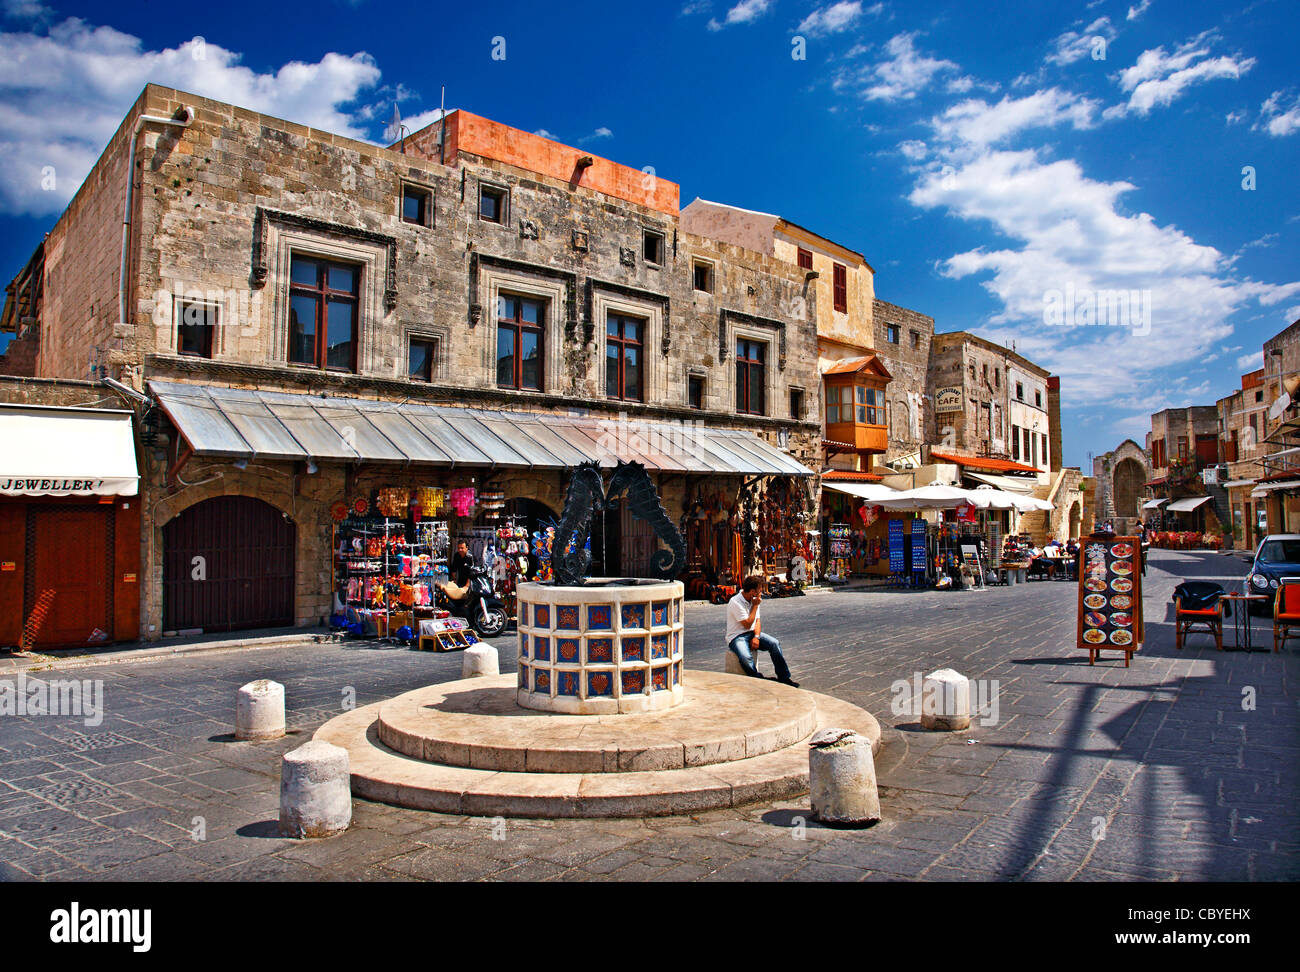 The  square  of Jewish Martyrs, in the heart of the Medieval town of Rhodes island, Dodecanese, Greece. - Stock Image